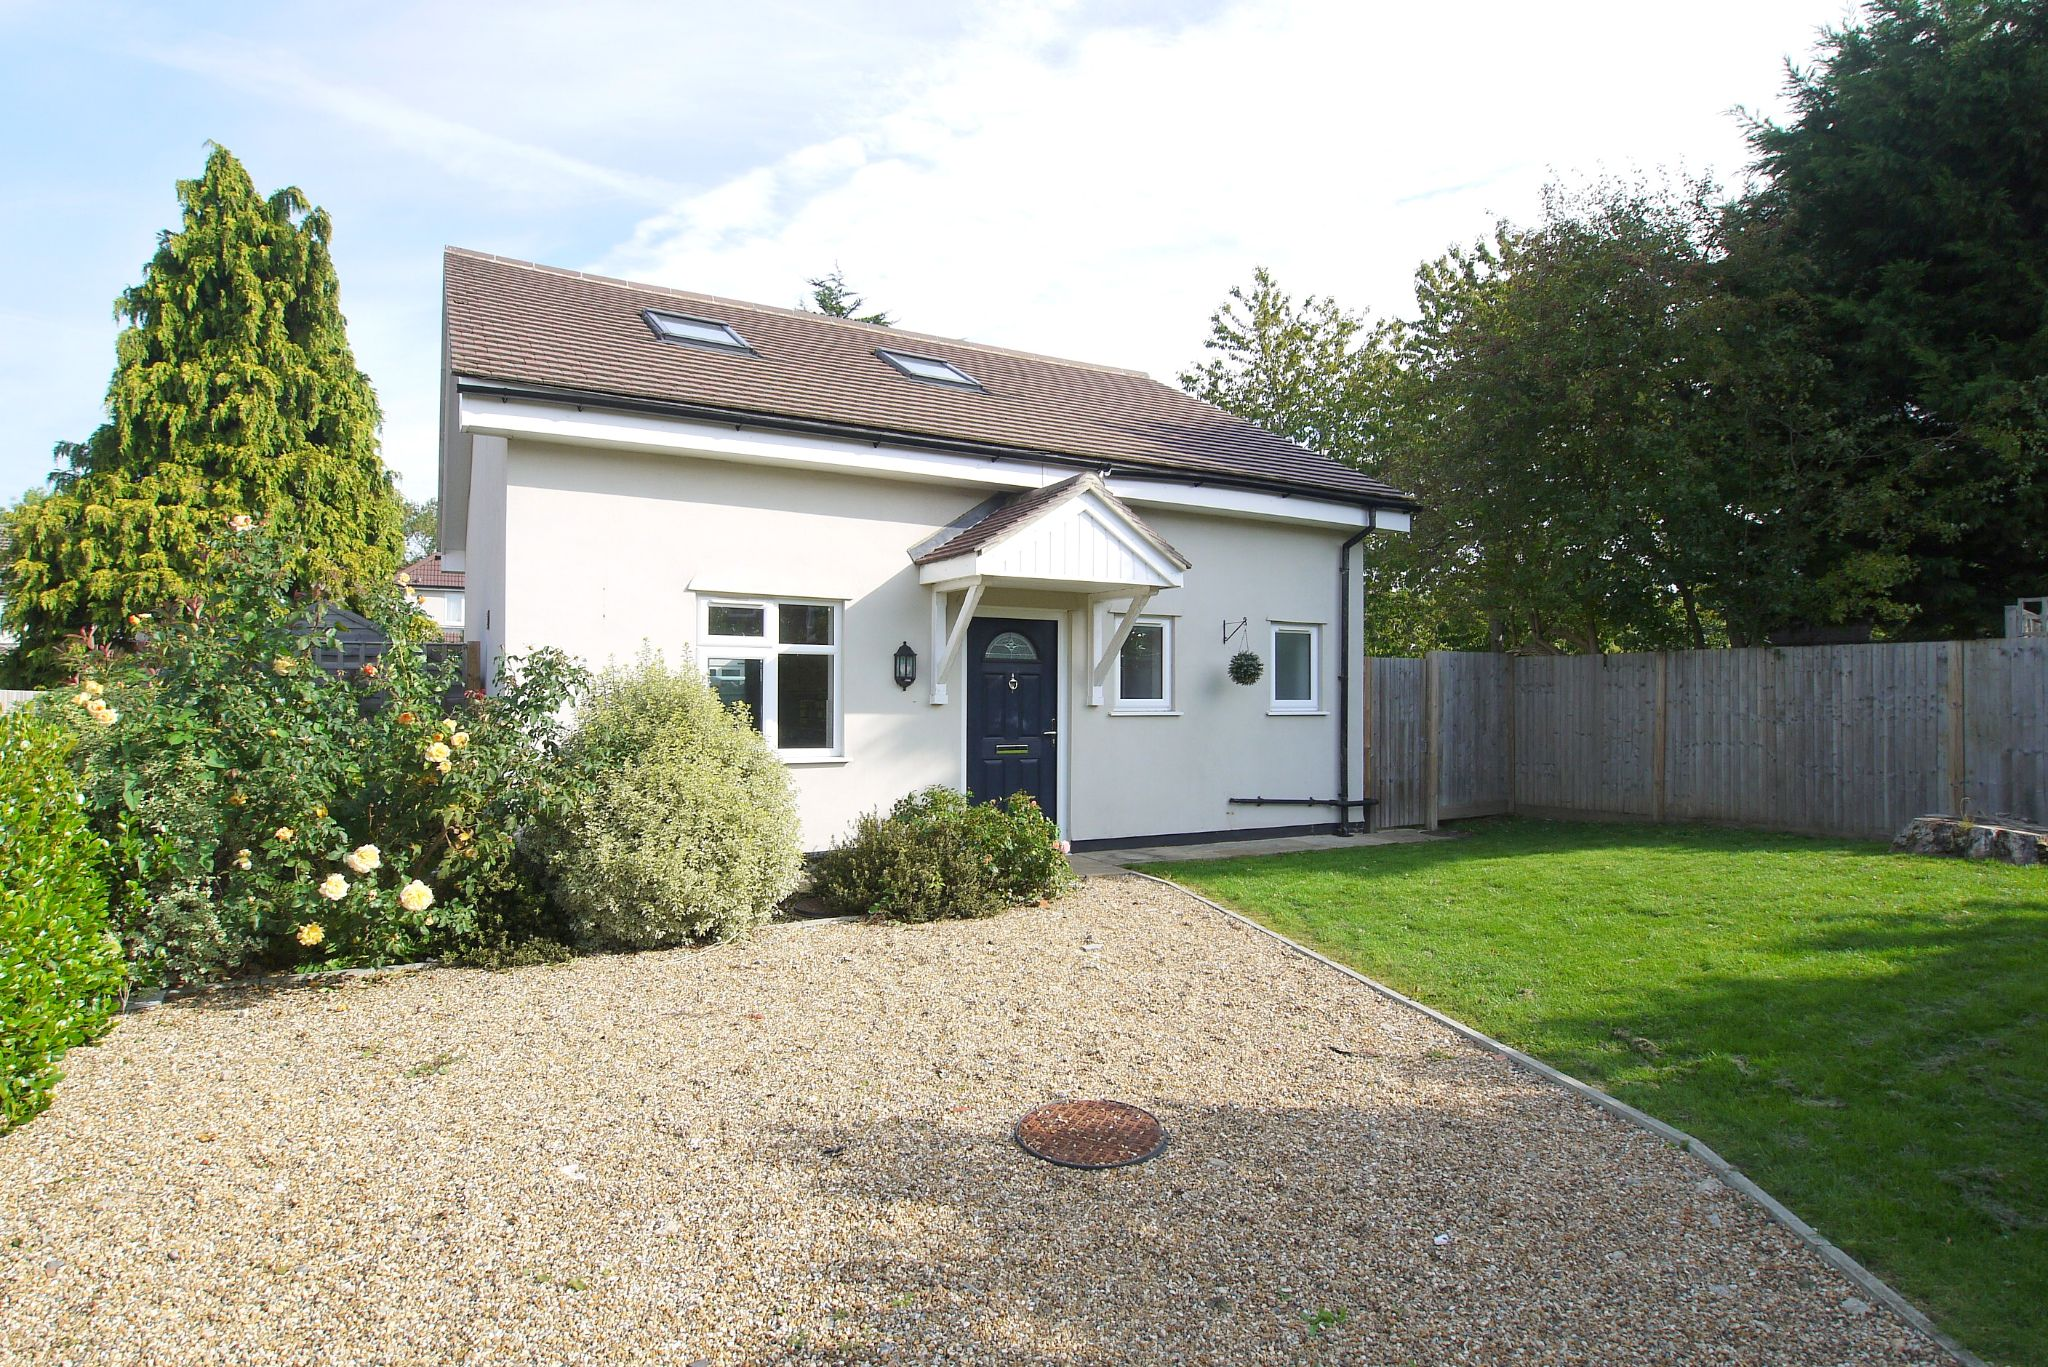 3 bedroom detached house For Sale in Sevenoaks - Photograph 1